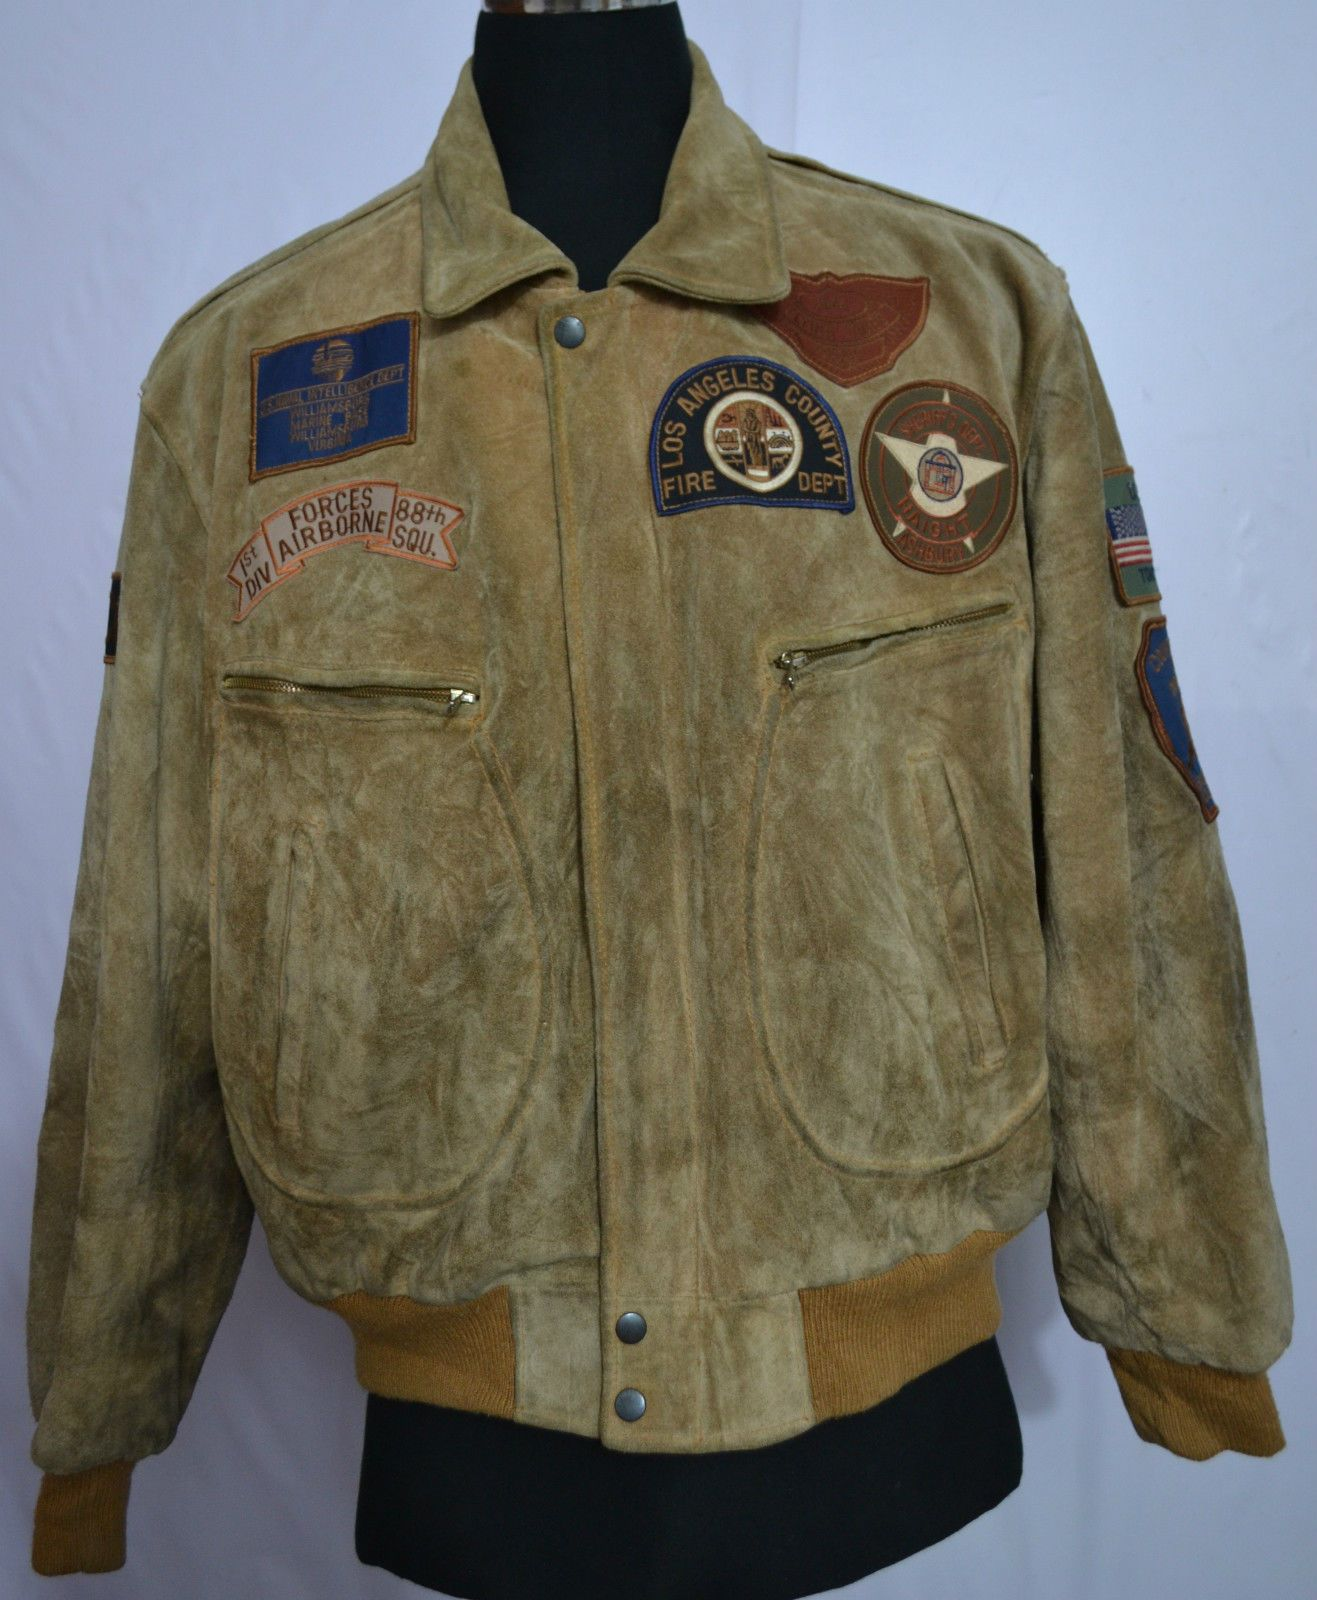 Leather jacket patches - Men S Bomber Flight Suede Leather Jacket With 4 Military 4 Civilian Patches